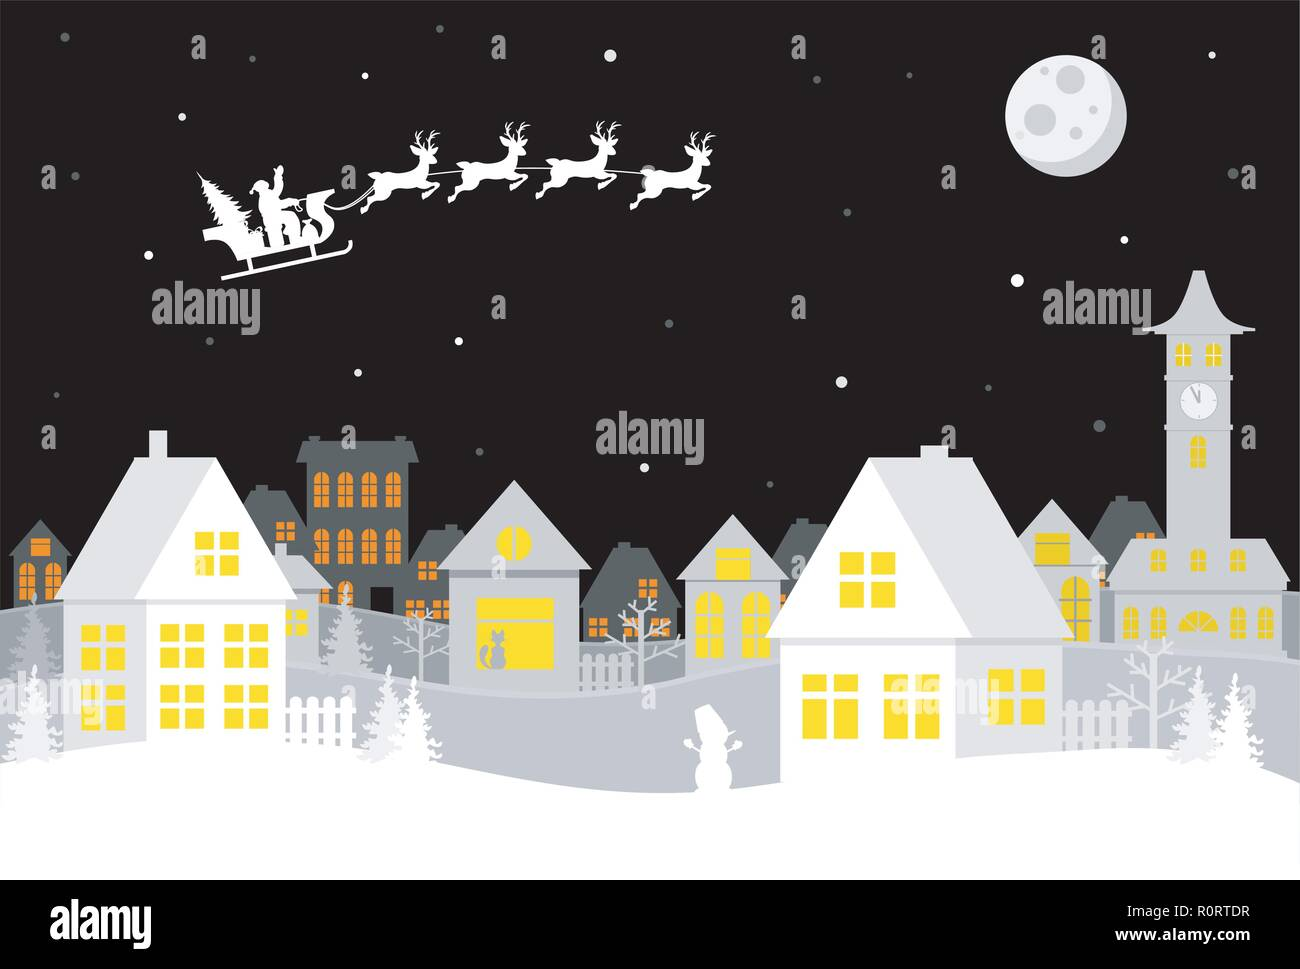 Merry Christmas and happy new year. A small town with Santa in the sky on a sleigh with deer. Paper art in digital style. Vector illustration. - Stock Image